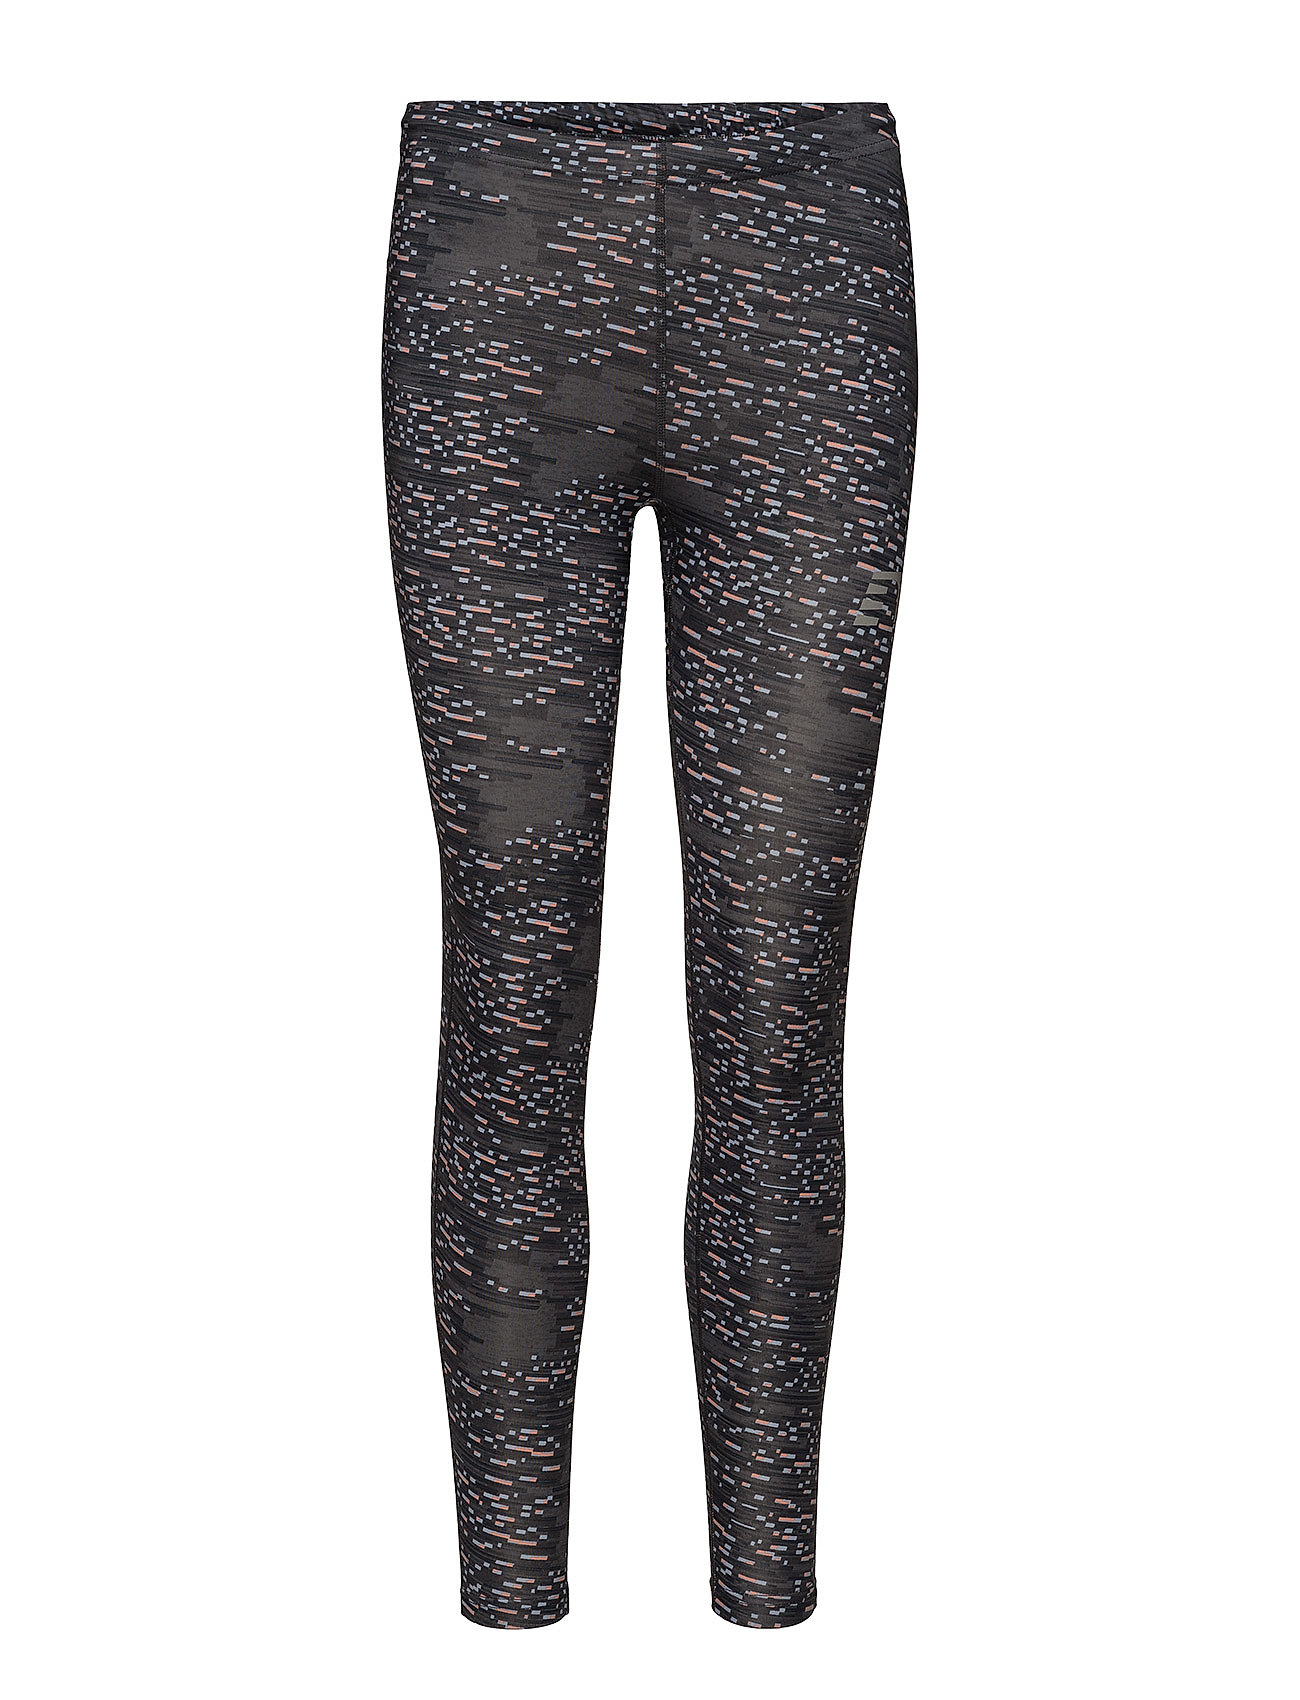 Newline Compression Printed Tights